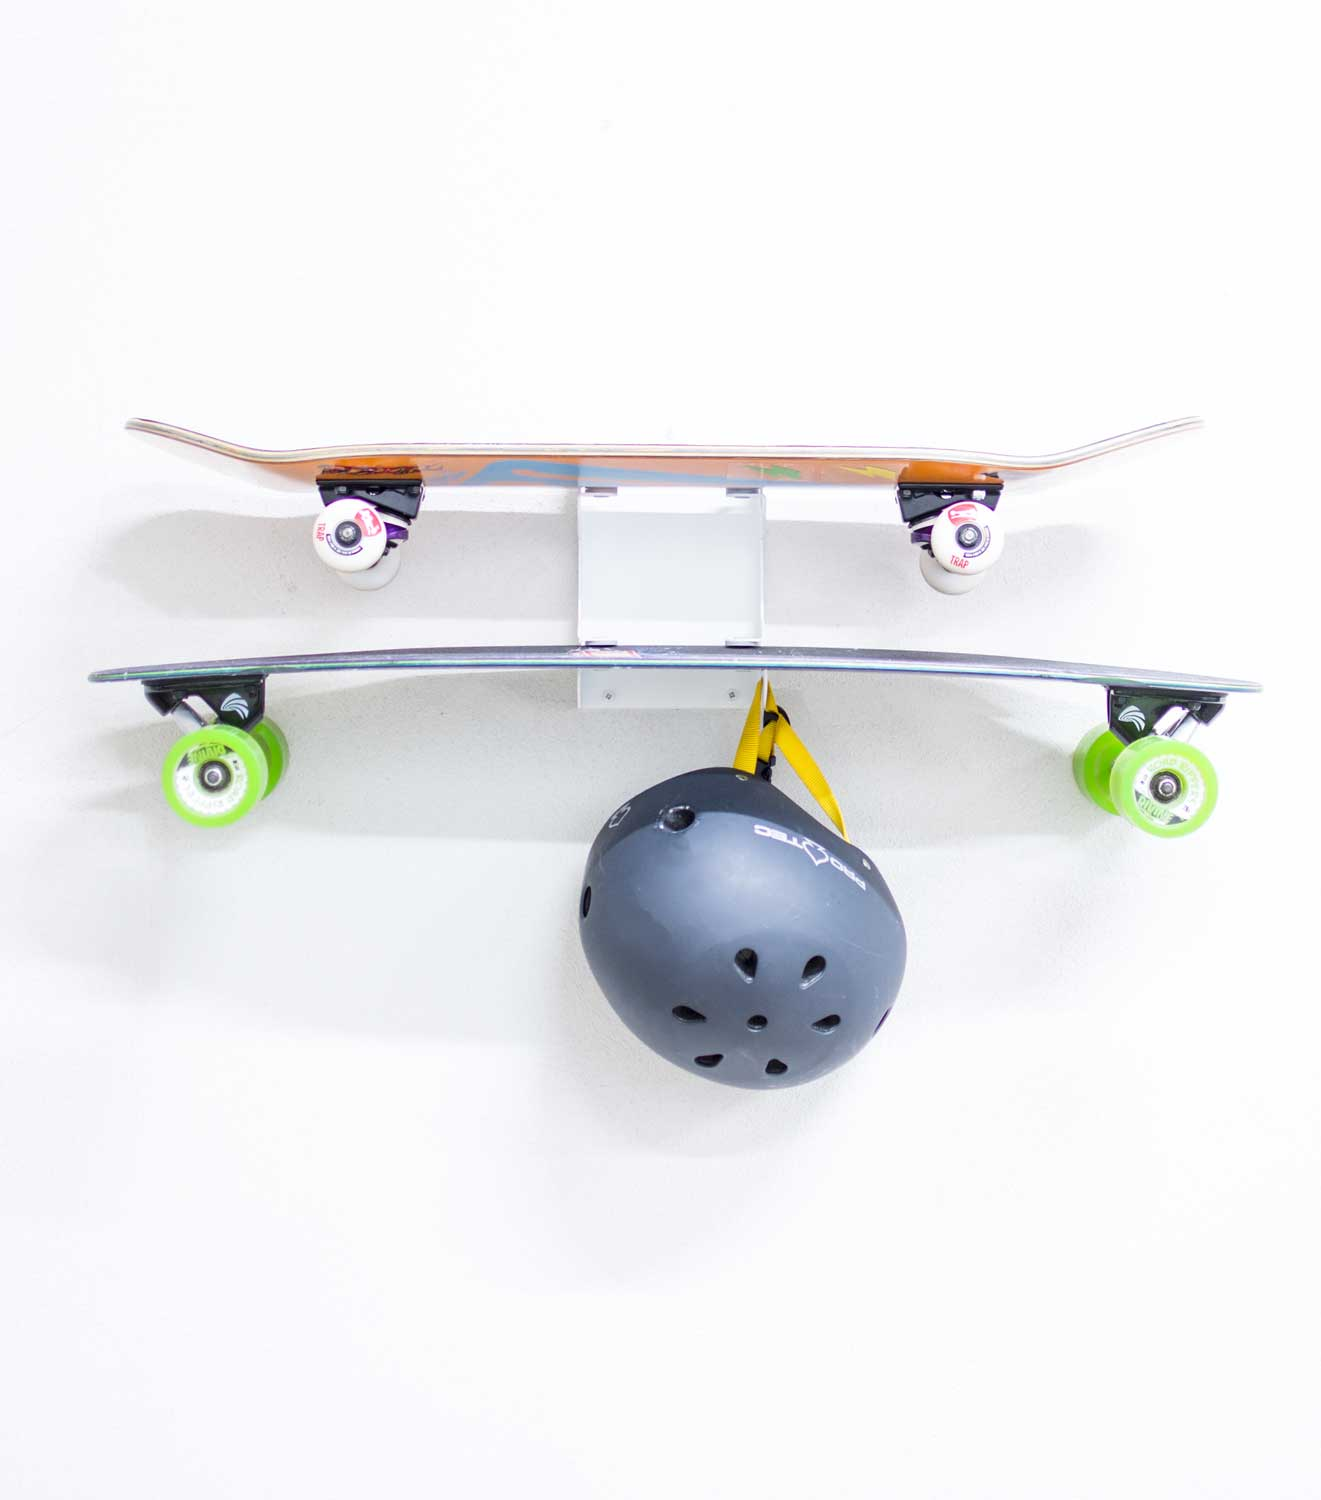 longboard wandhalterung f r zwei longboards. Black Bedroom Furniture Sets. Home Design Ideas